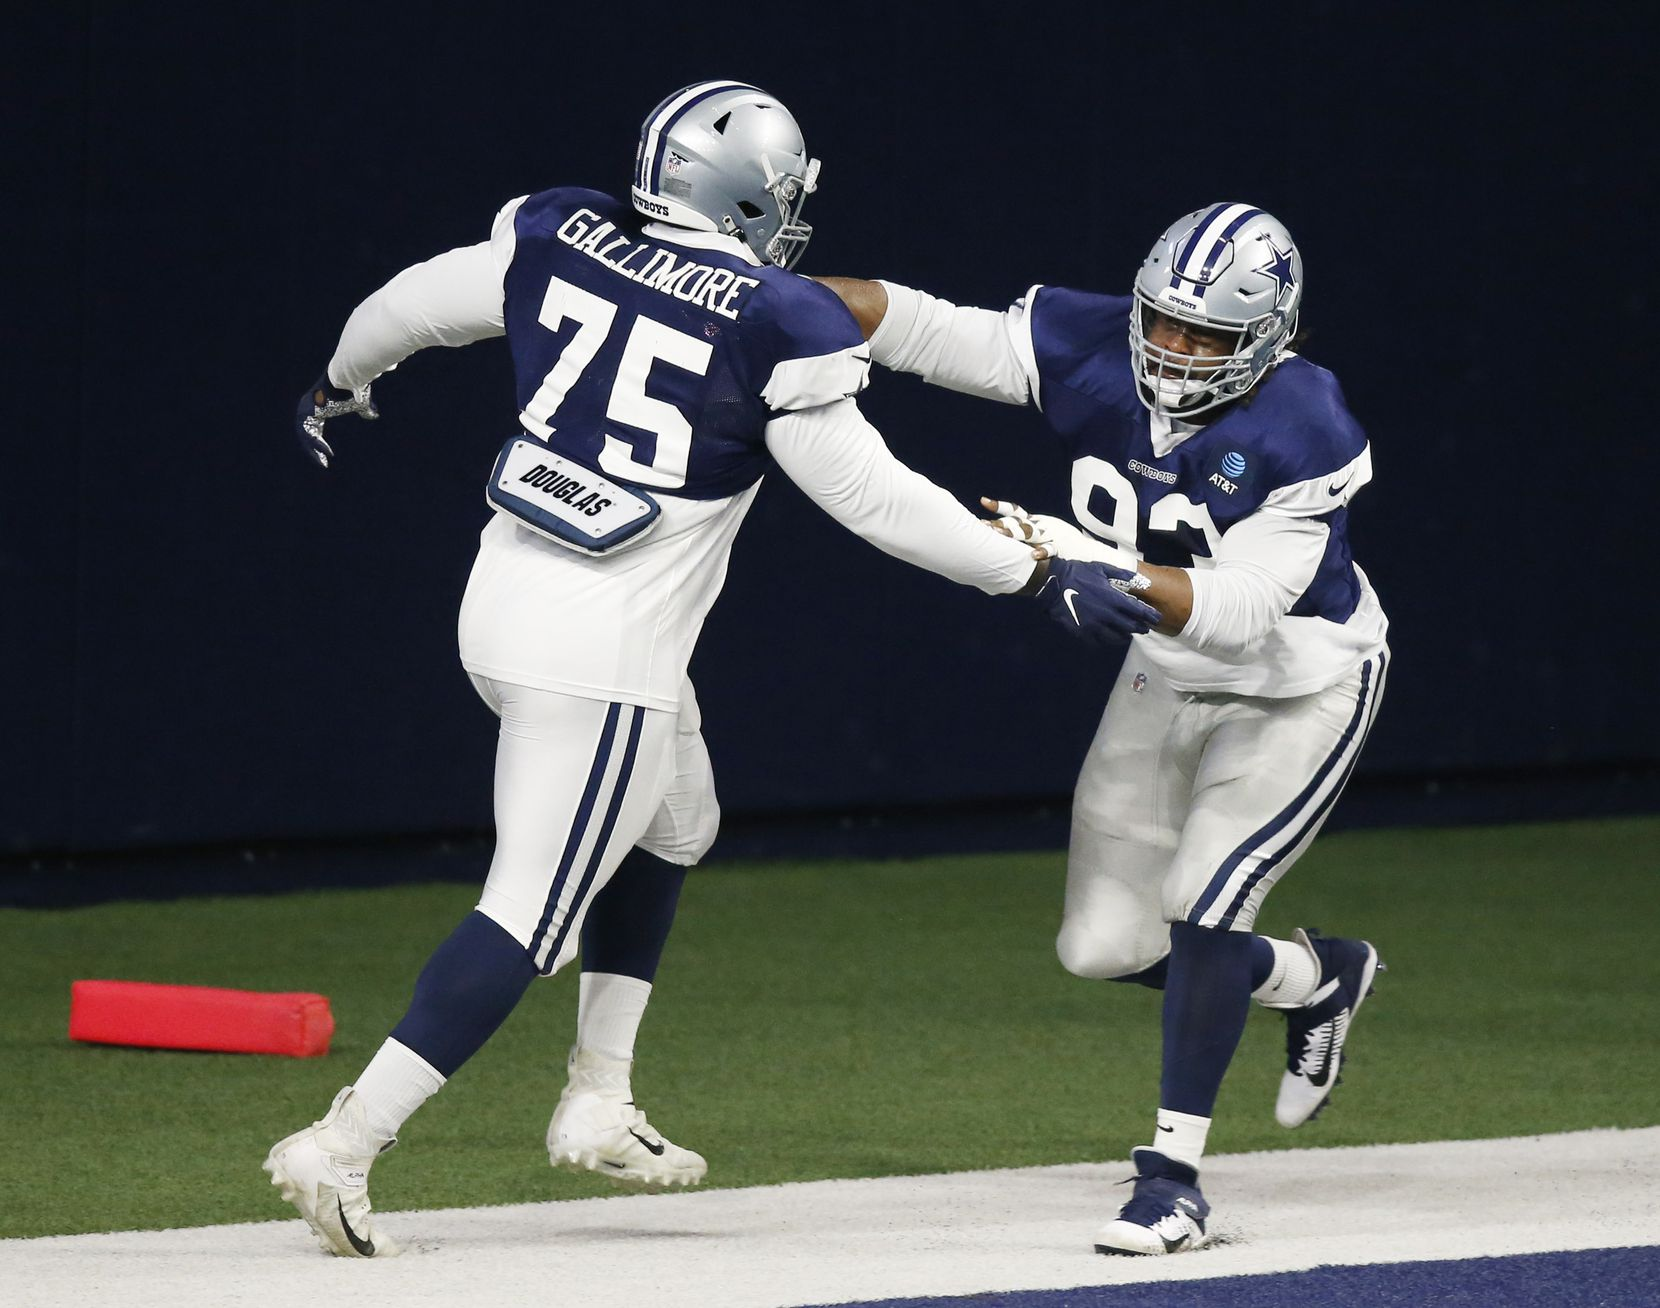 Dallas Cowboys defensive tackle Gerald McCoy (93) runs through a drill with Dallas Cowboys defensive tackle Neville Gallimore (75) during training camp at the Dallas Cowboys headquarters at The Star in Frisco, Texas on Monday, August 17, 2020. (Vernon Bryant/The Dallas Morning News)